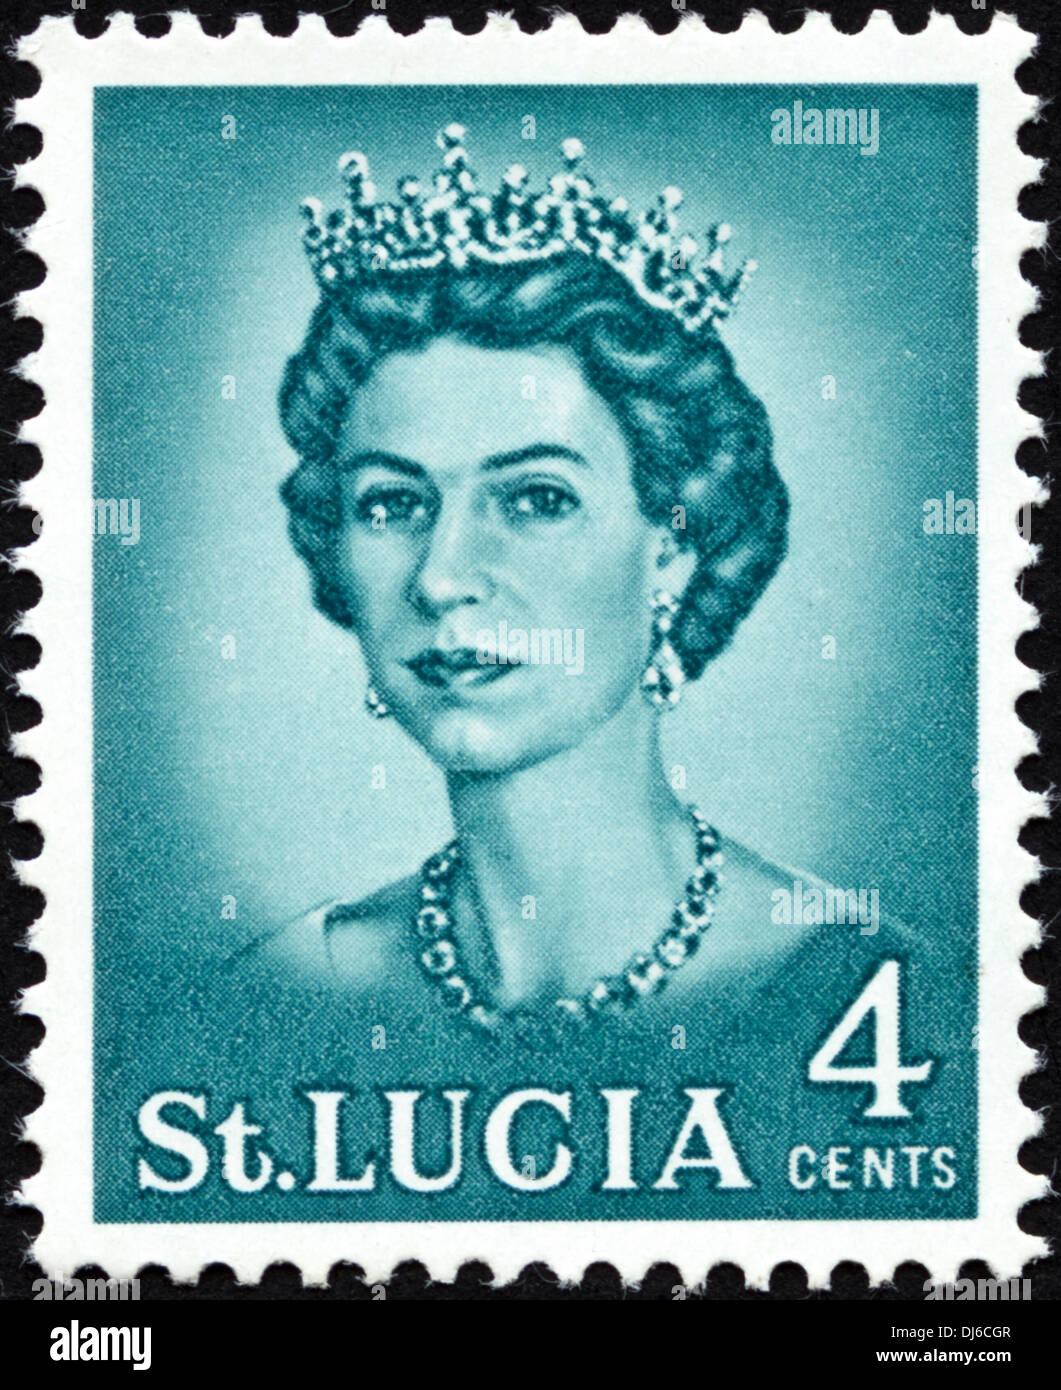 postage stamp St. Lucia 4cents featuring Queen Elizabeth II dated 1964 - Stock Image